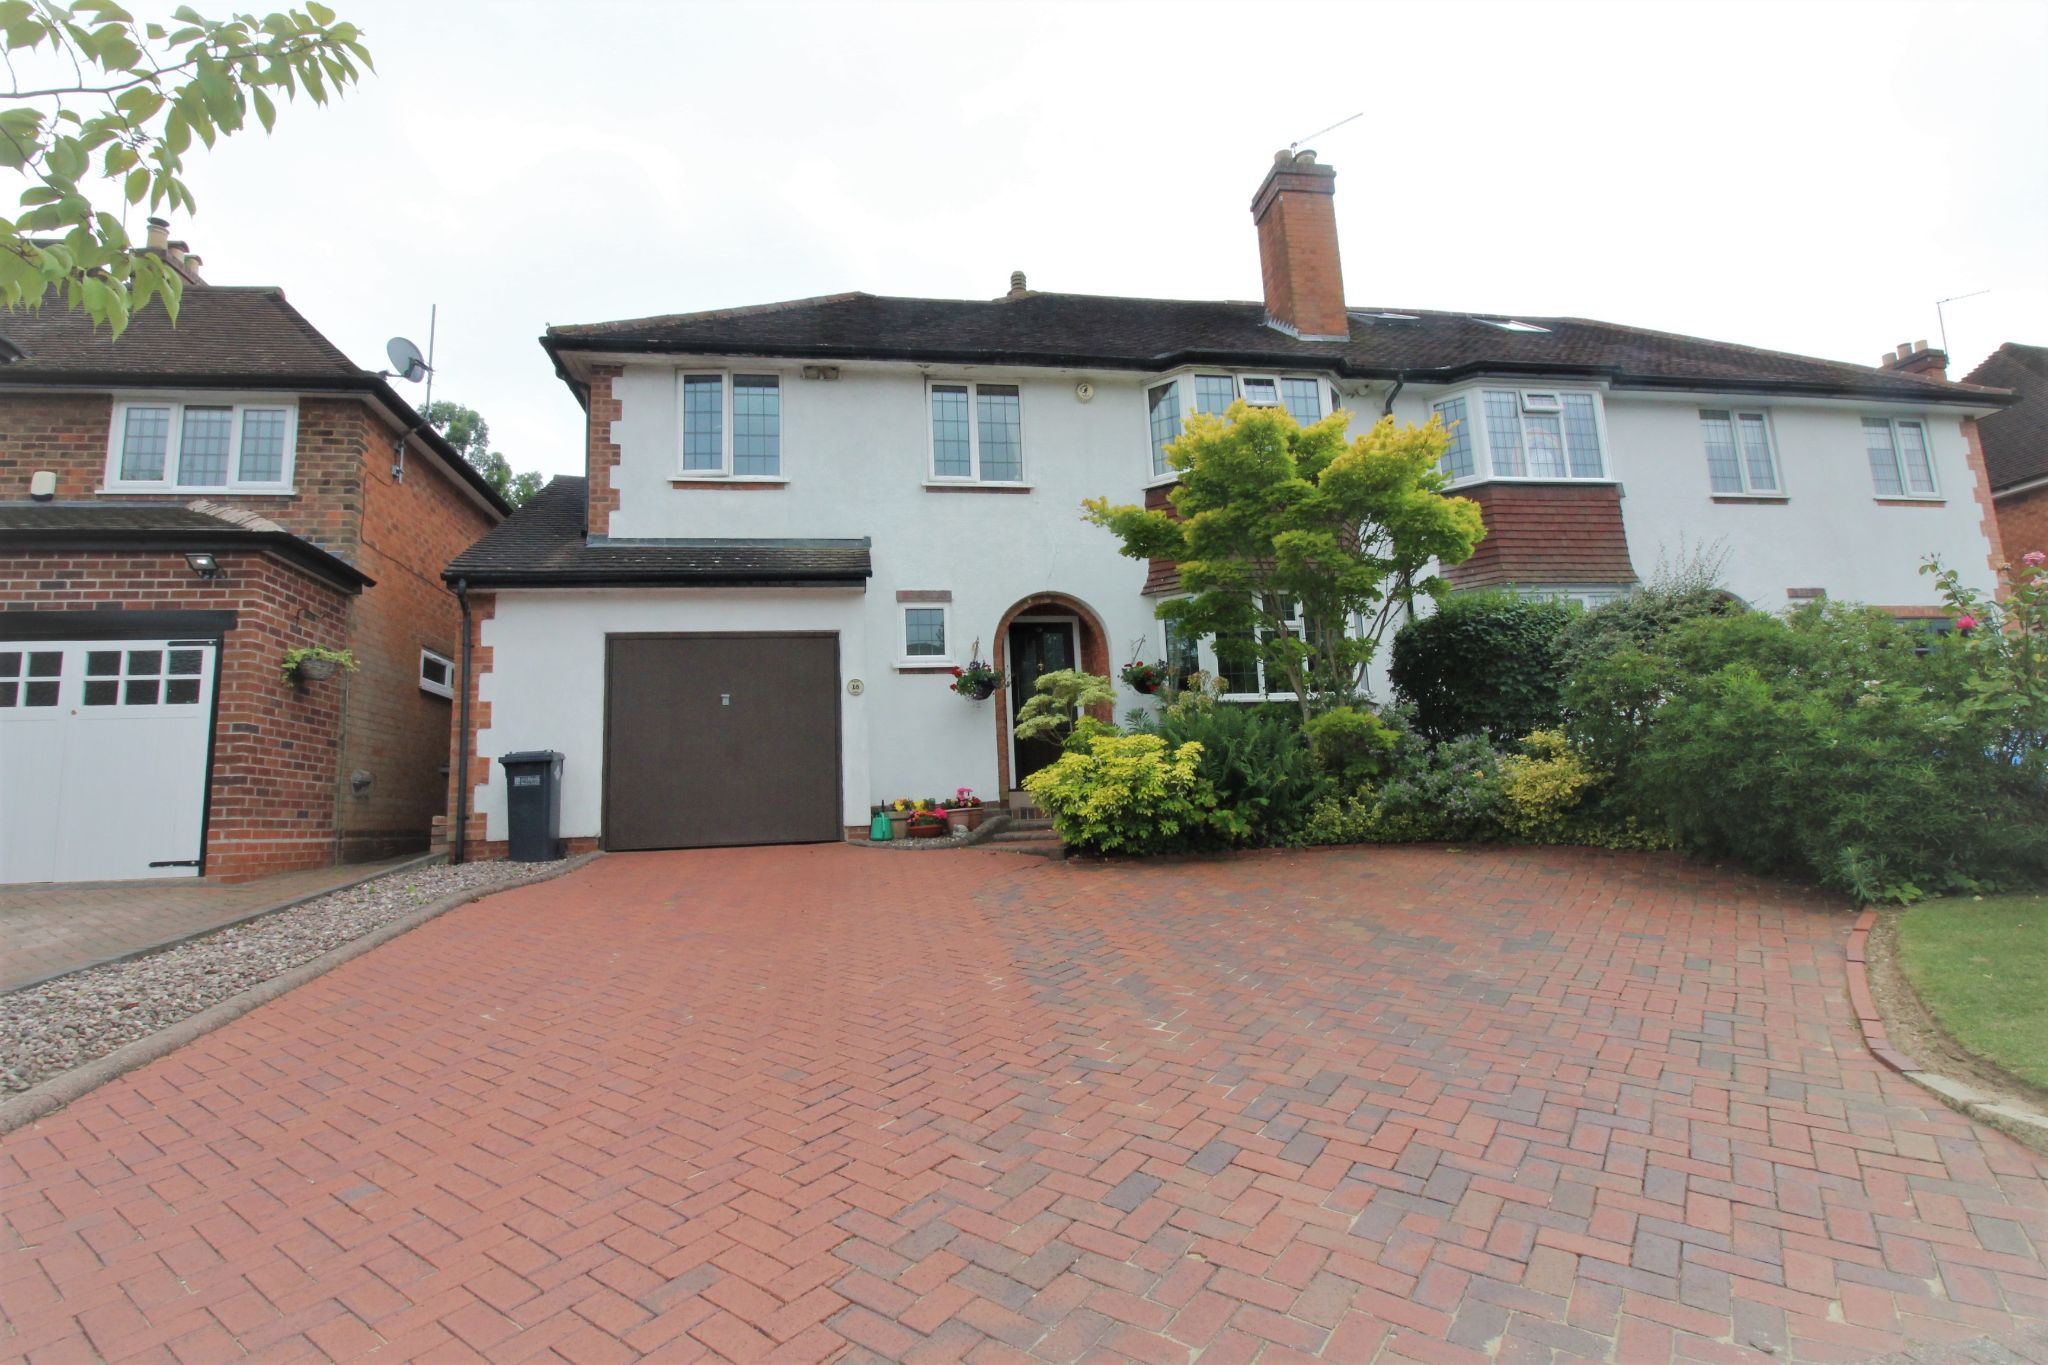 4 bedroom semi-detached house SSTC in Solihull - Photograph 1.